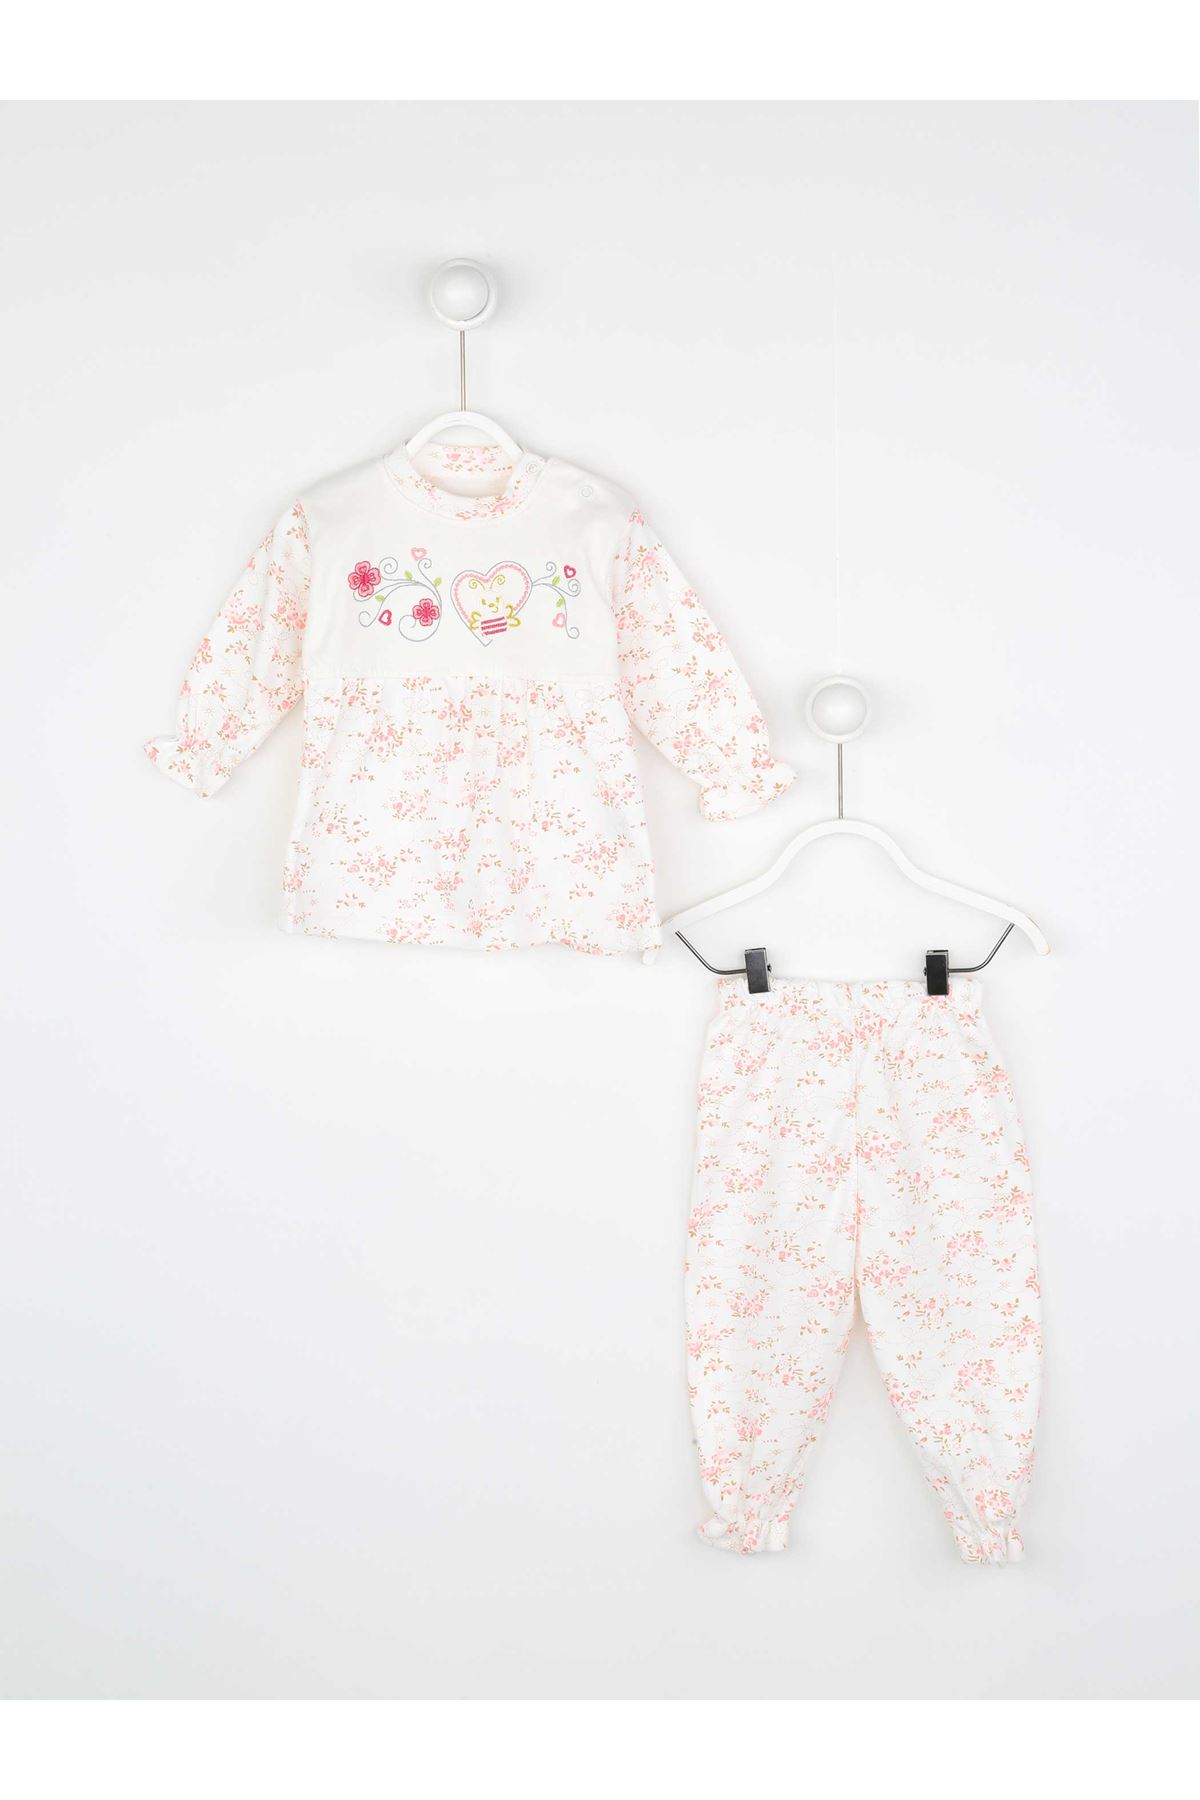 Pink Baby Girl Daily 2 Piece Suit Set Cotton Daily Seasonal Casual Wear Girls Babies Suit Outfit Models